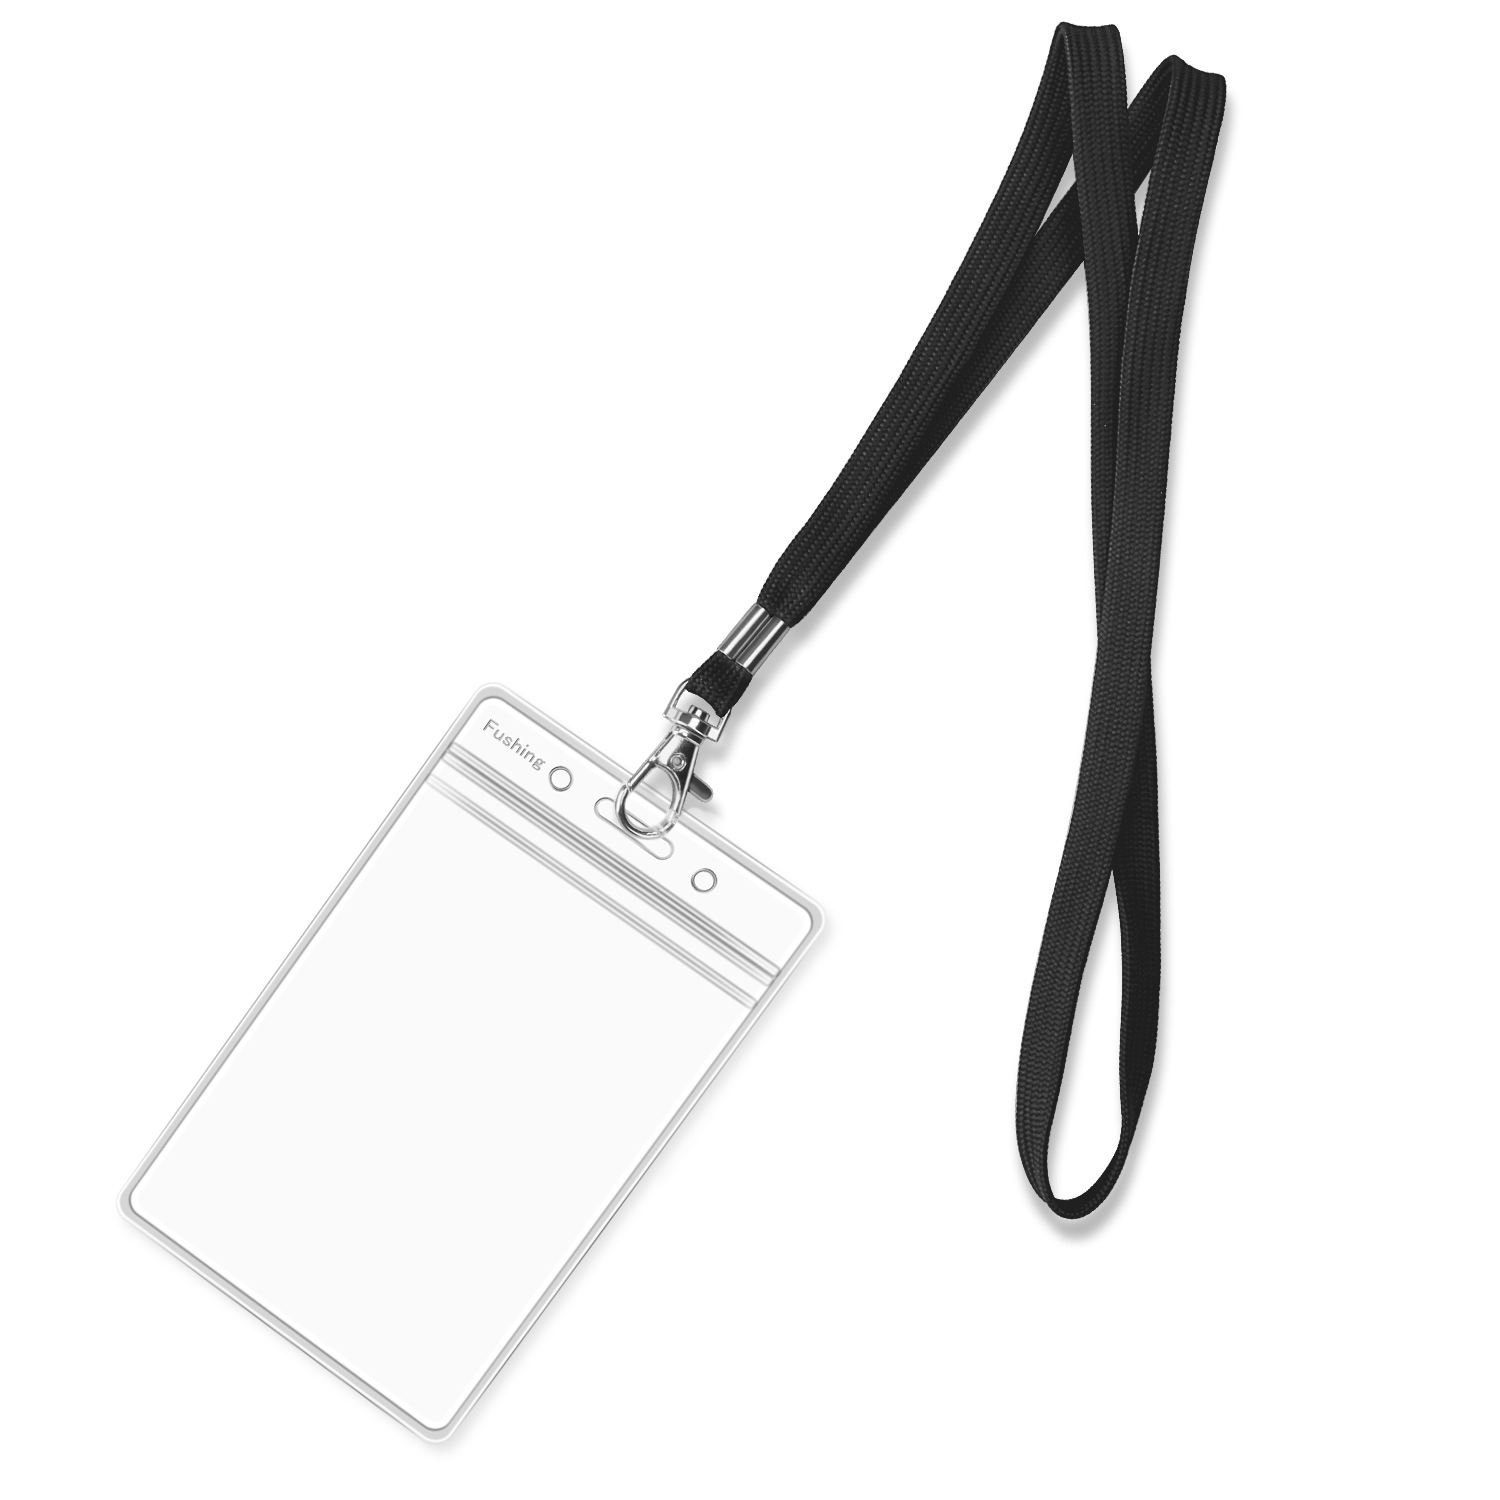 Clear Plastic Vertical Name Tags Badge ID Card Holders and Black Neck Lanyards with Swivel Hook For School, Festival, Event